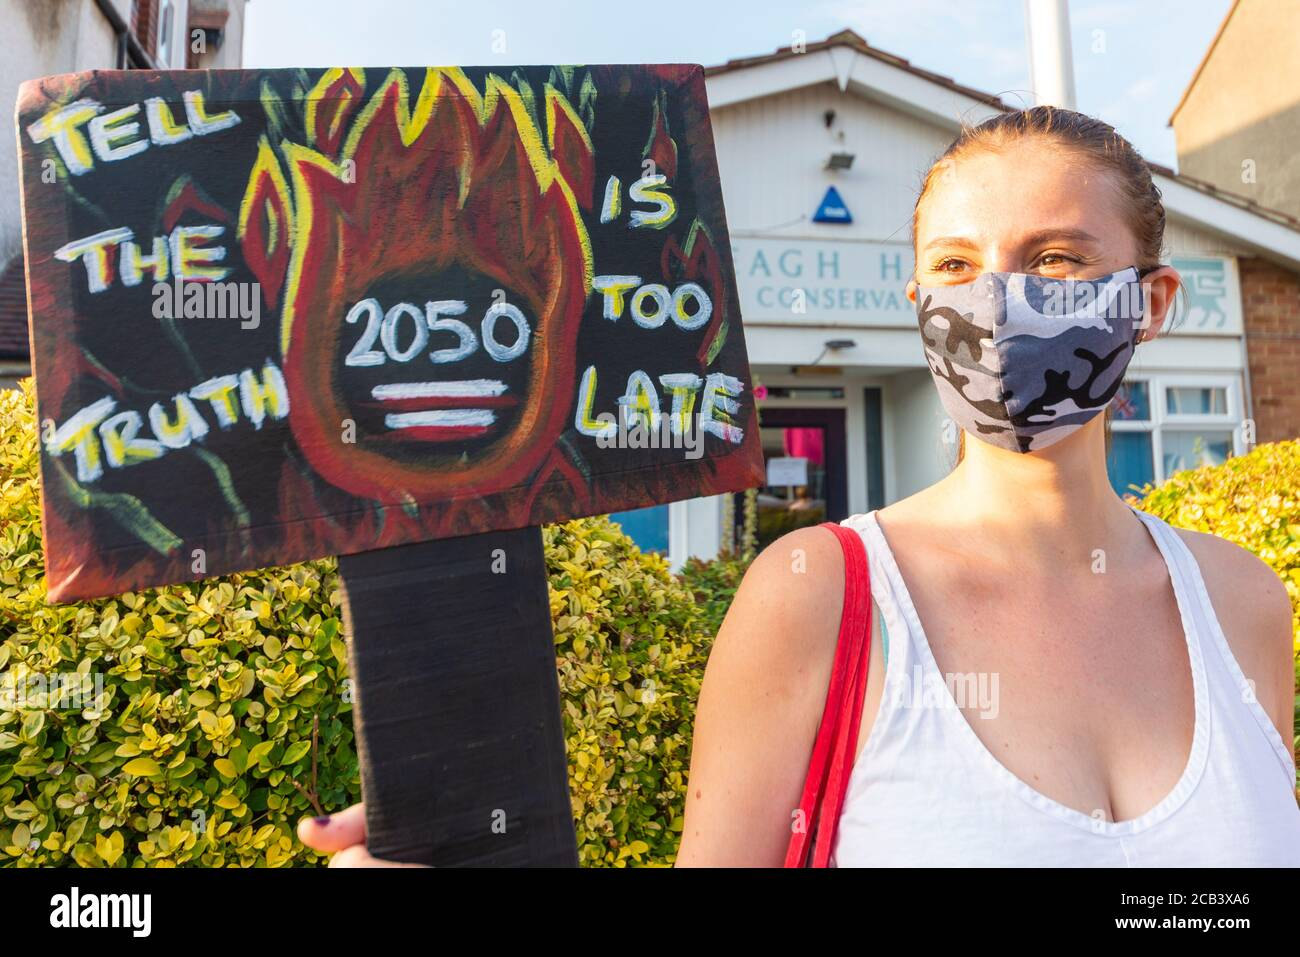 leigh-road-leigh-on-sea-essex-uk-10th-aug-2020-the-southend-branch-of-extinction-rebellion-held-a-protest-outside-the-iveagh-hall-constituency-office-of-david-amess-conservative-mp-for-southend-west-the-climate-change-protesters-held-a-banner-stating-tell-the-truth-in-relation-to-the-uks-target-of-reaching-net-zero-emissions-by-2050-which-they-believe-is-too-late-noaa-have-forecast-a-blue-ocean-event-of-melting-arctic-ice-2CB3XA6.jpg